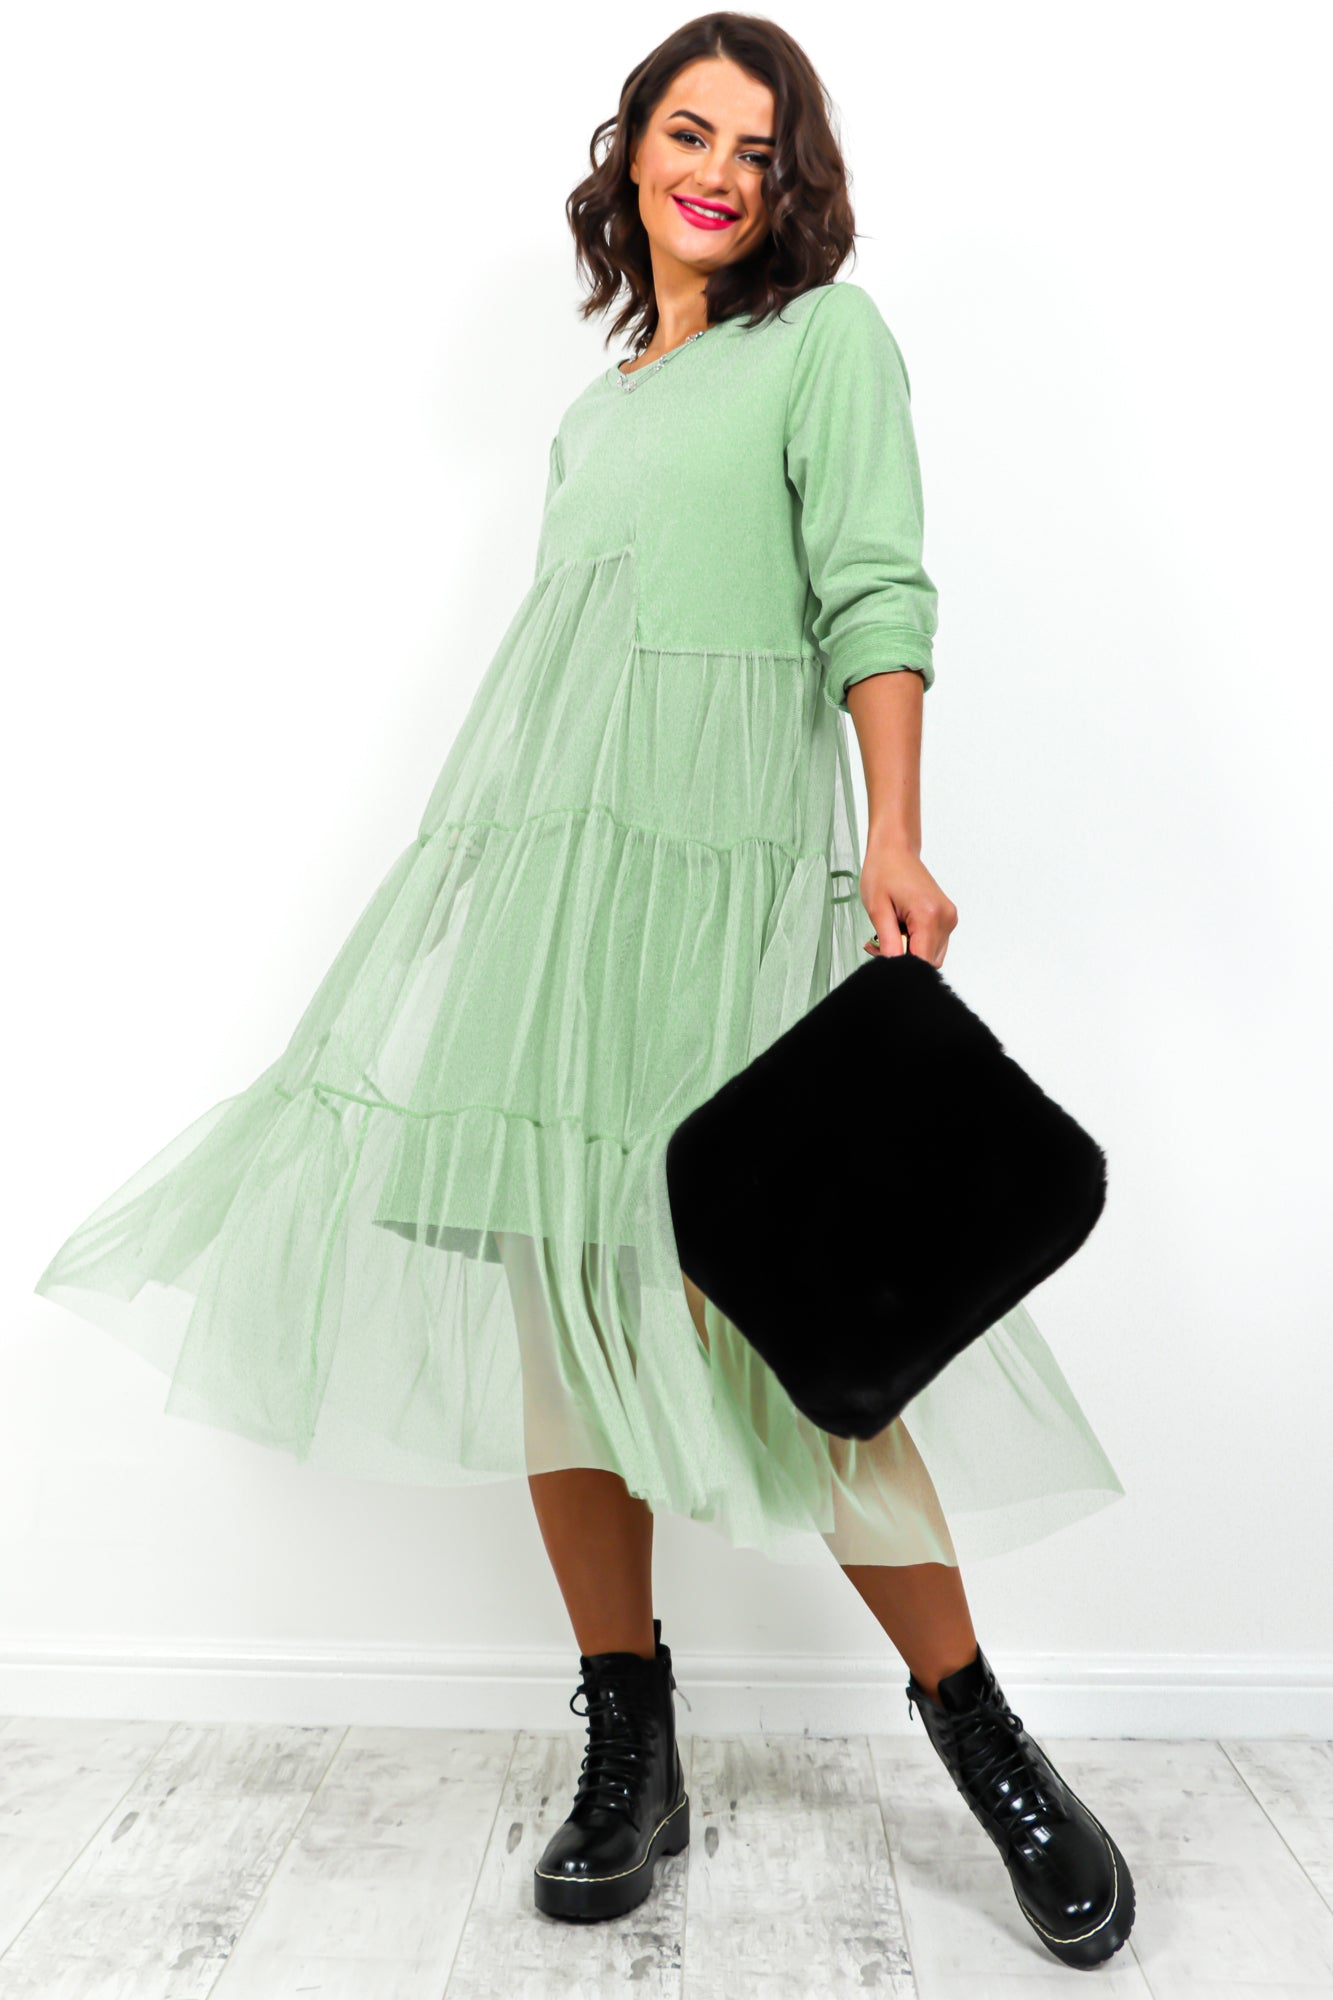 Net's Roll - Dress In MINT